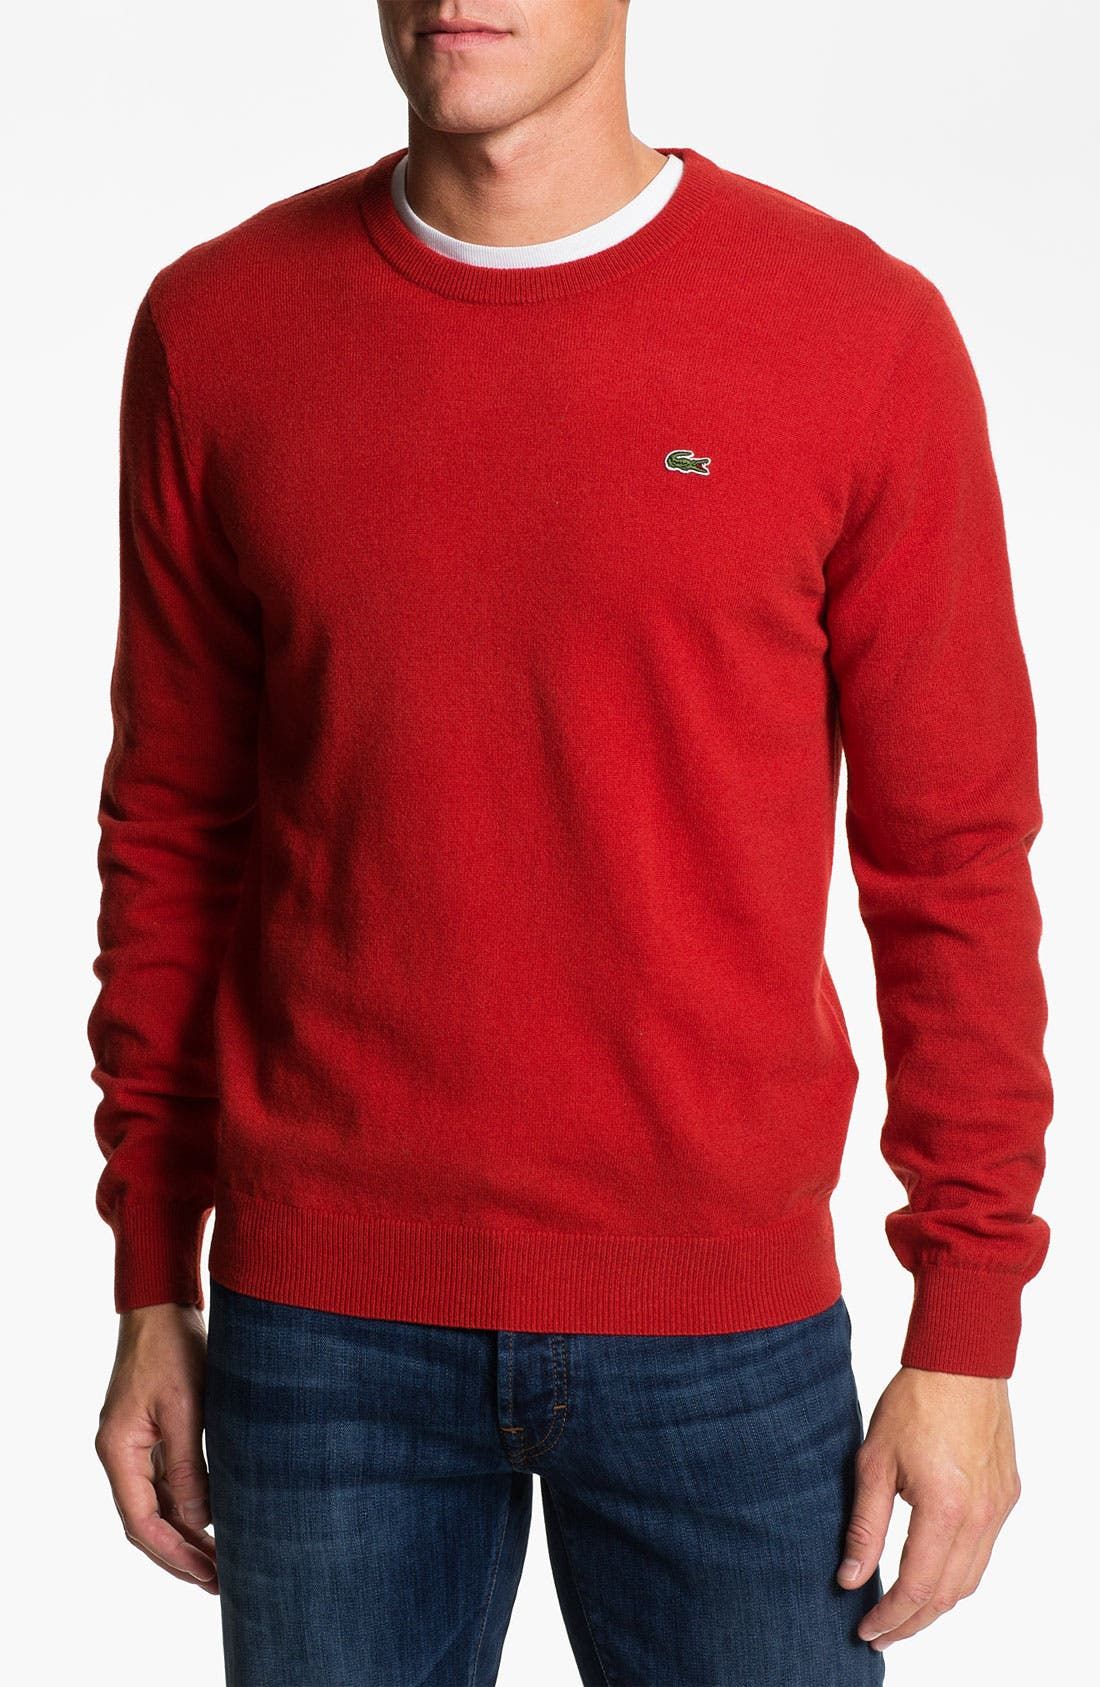 Main Image - Lacoste Crewneck Wool Sweater